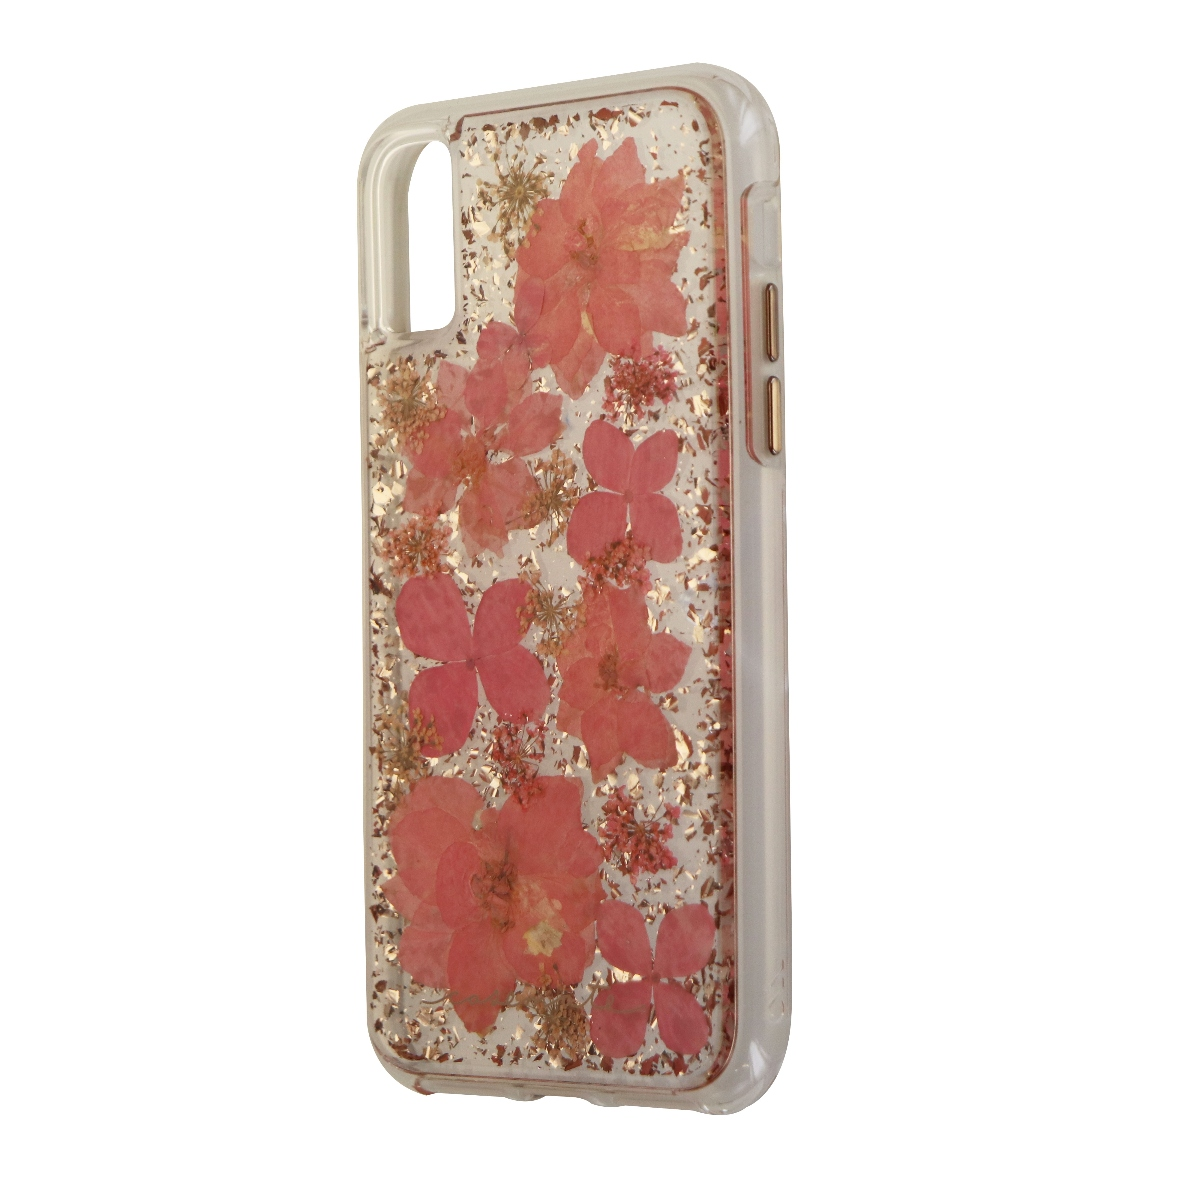 Case-Mate Karat Petals Series Hard Case for Apple iPhone X 10 - Pink Flowers